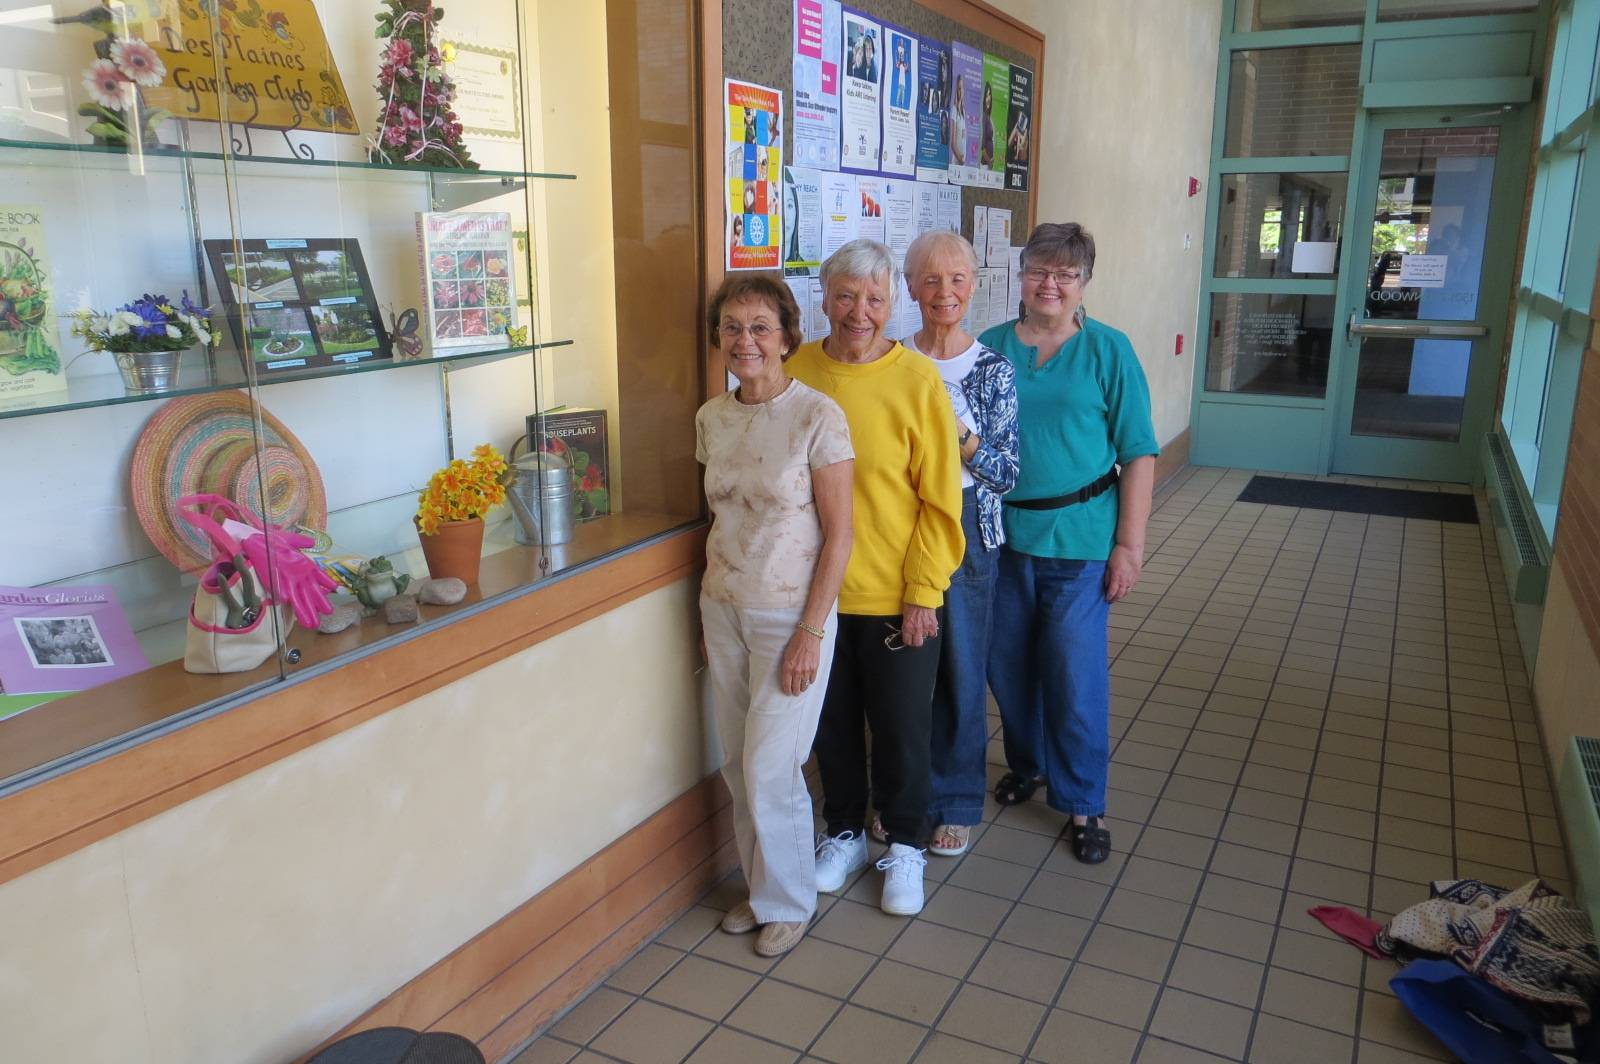 L to R Annette Roeder, Eileen Van Diggelen, Judy Riordan and Ann Ostenson. Picture take at the Des Plaines Library.